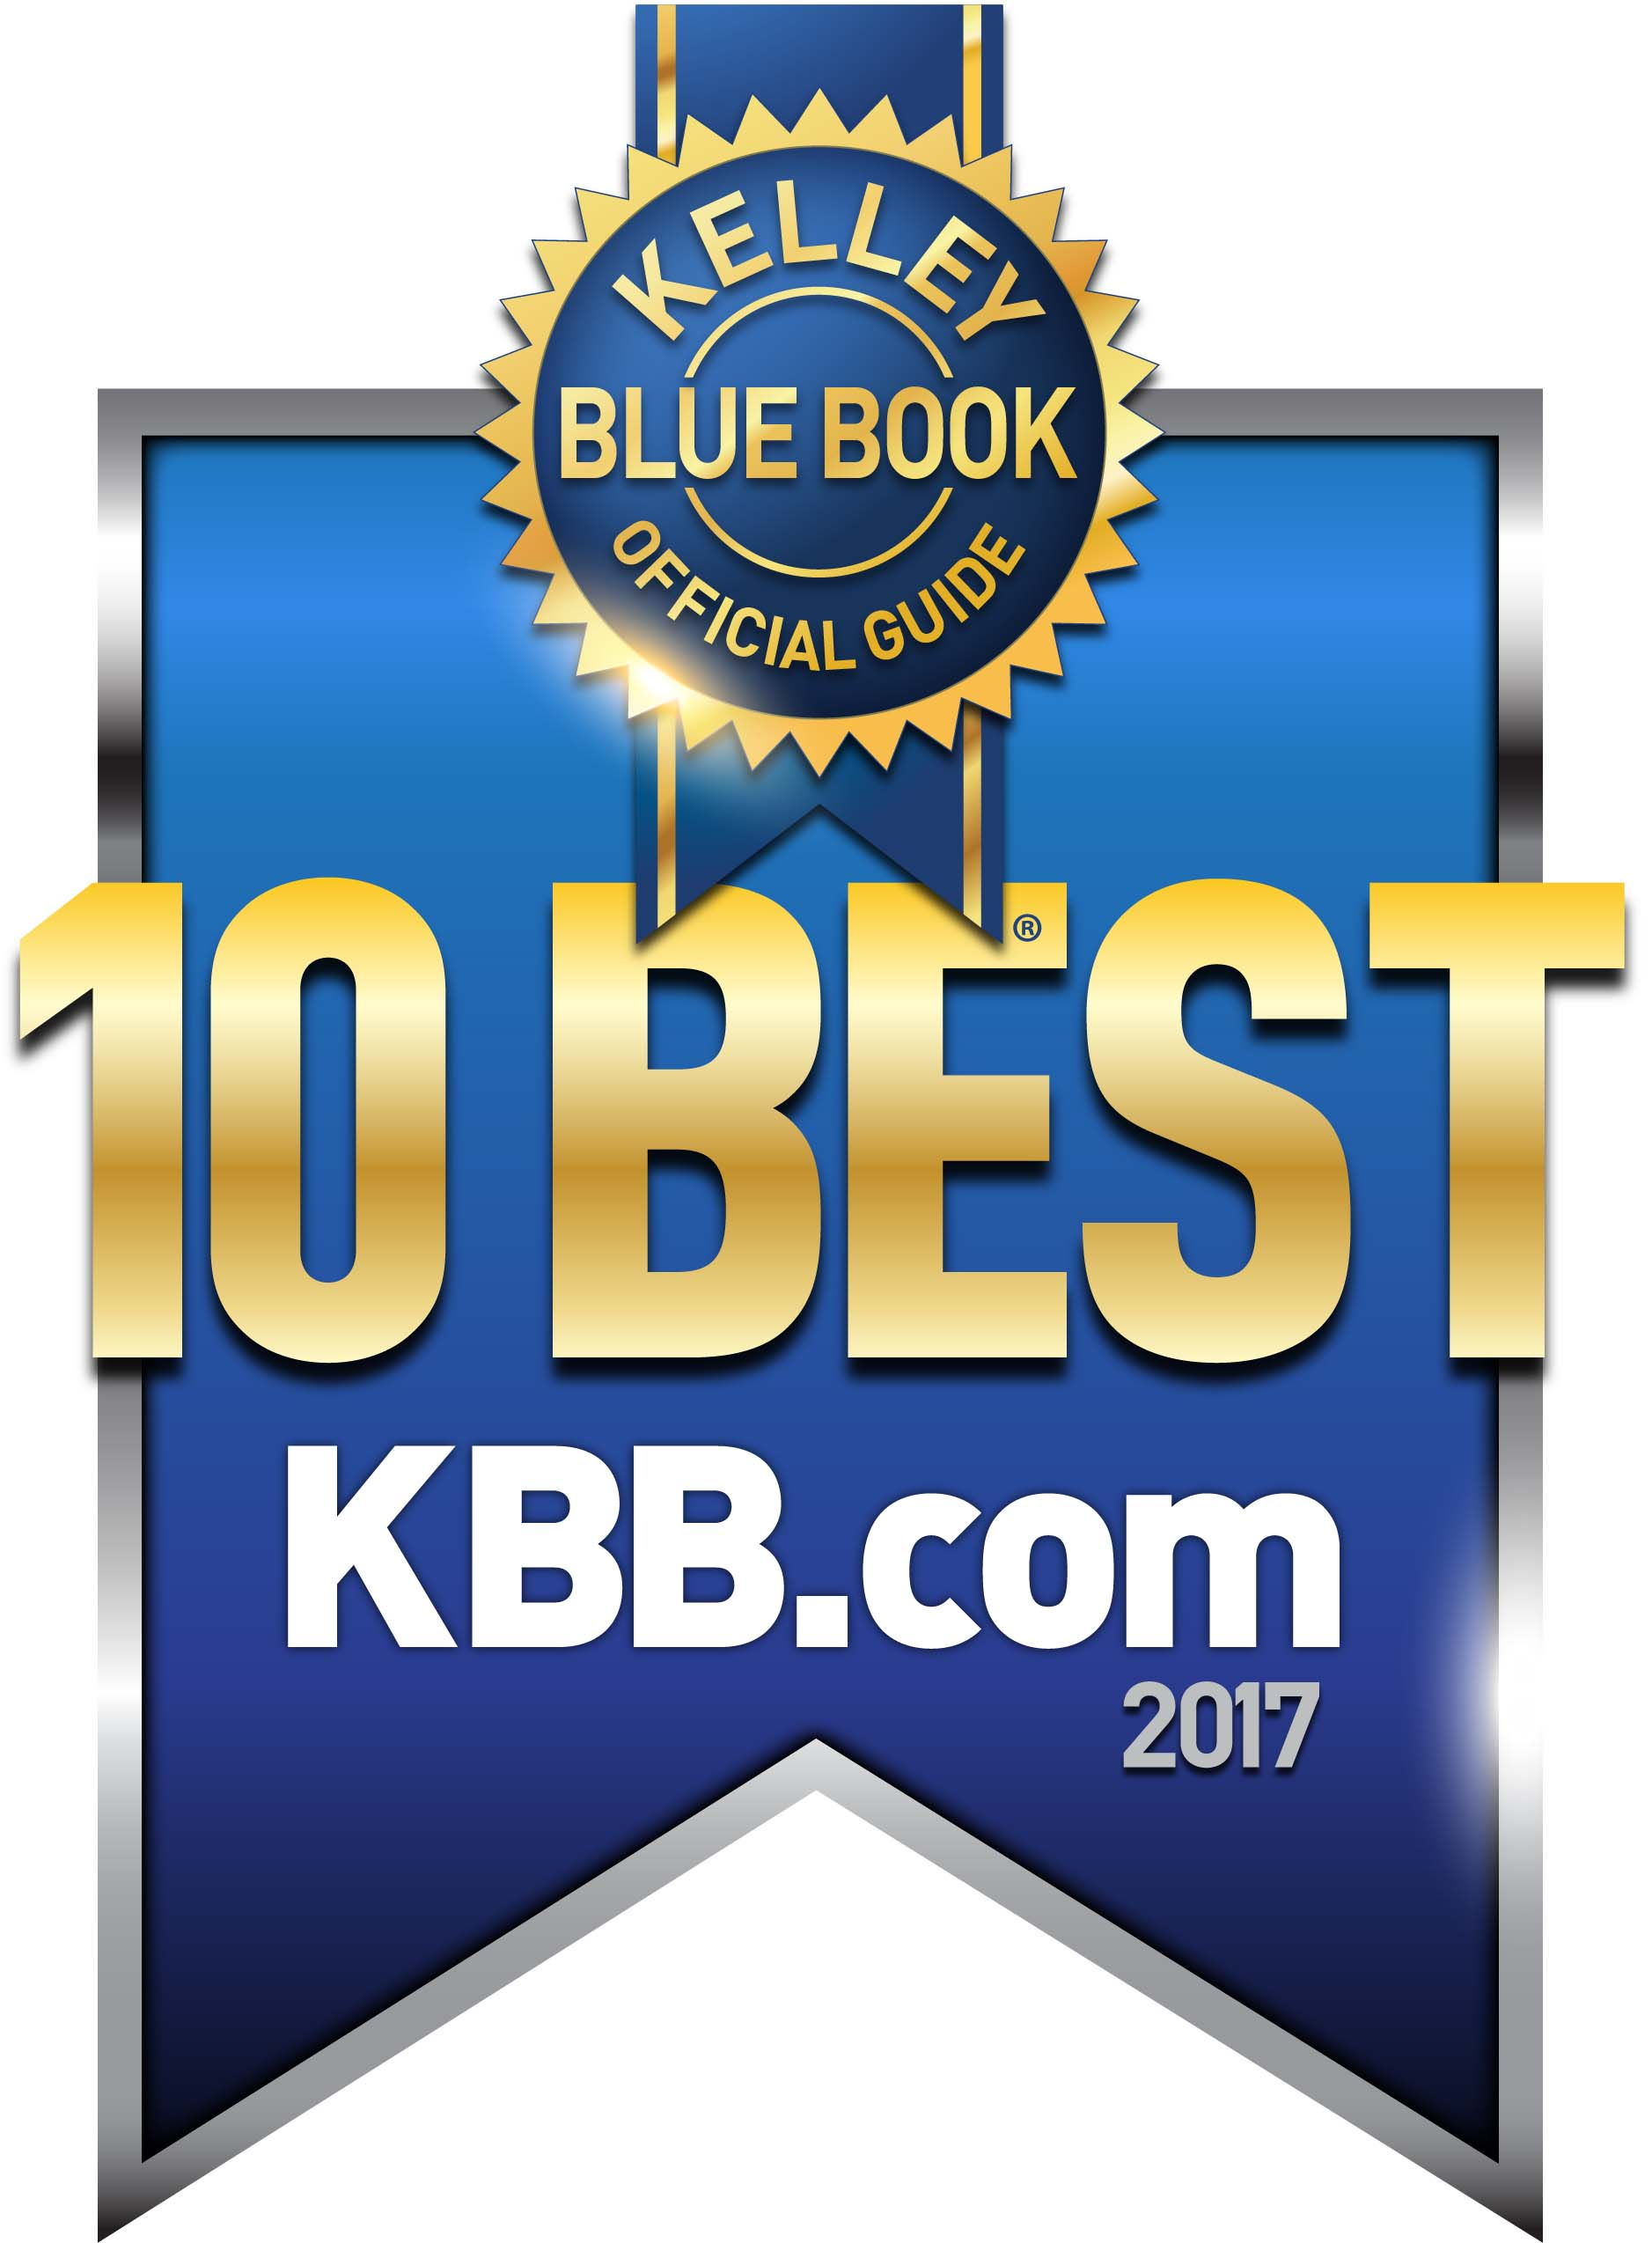 Proving that cool and affordable really can continue to coexist, the experts at Kelley Blue Book's KBB.com have named their annual list of the 10 Coolest Cars Under $18,000 for 2017.